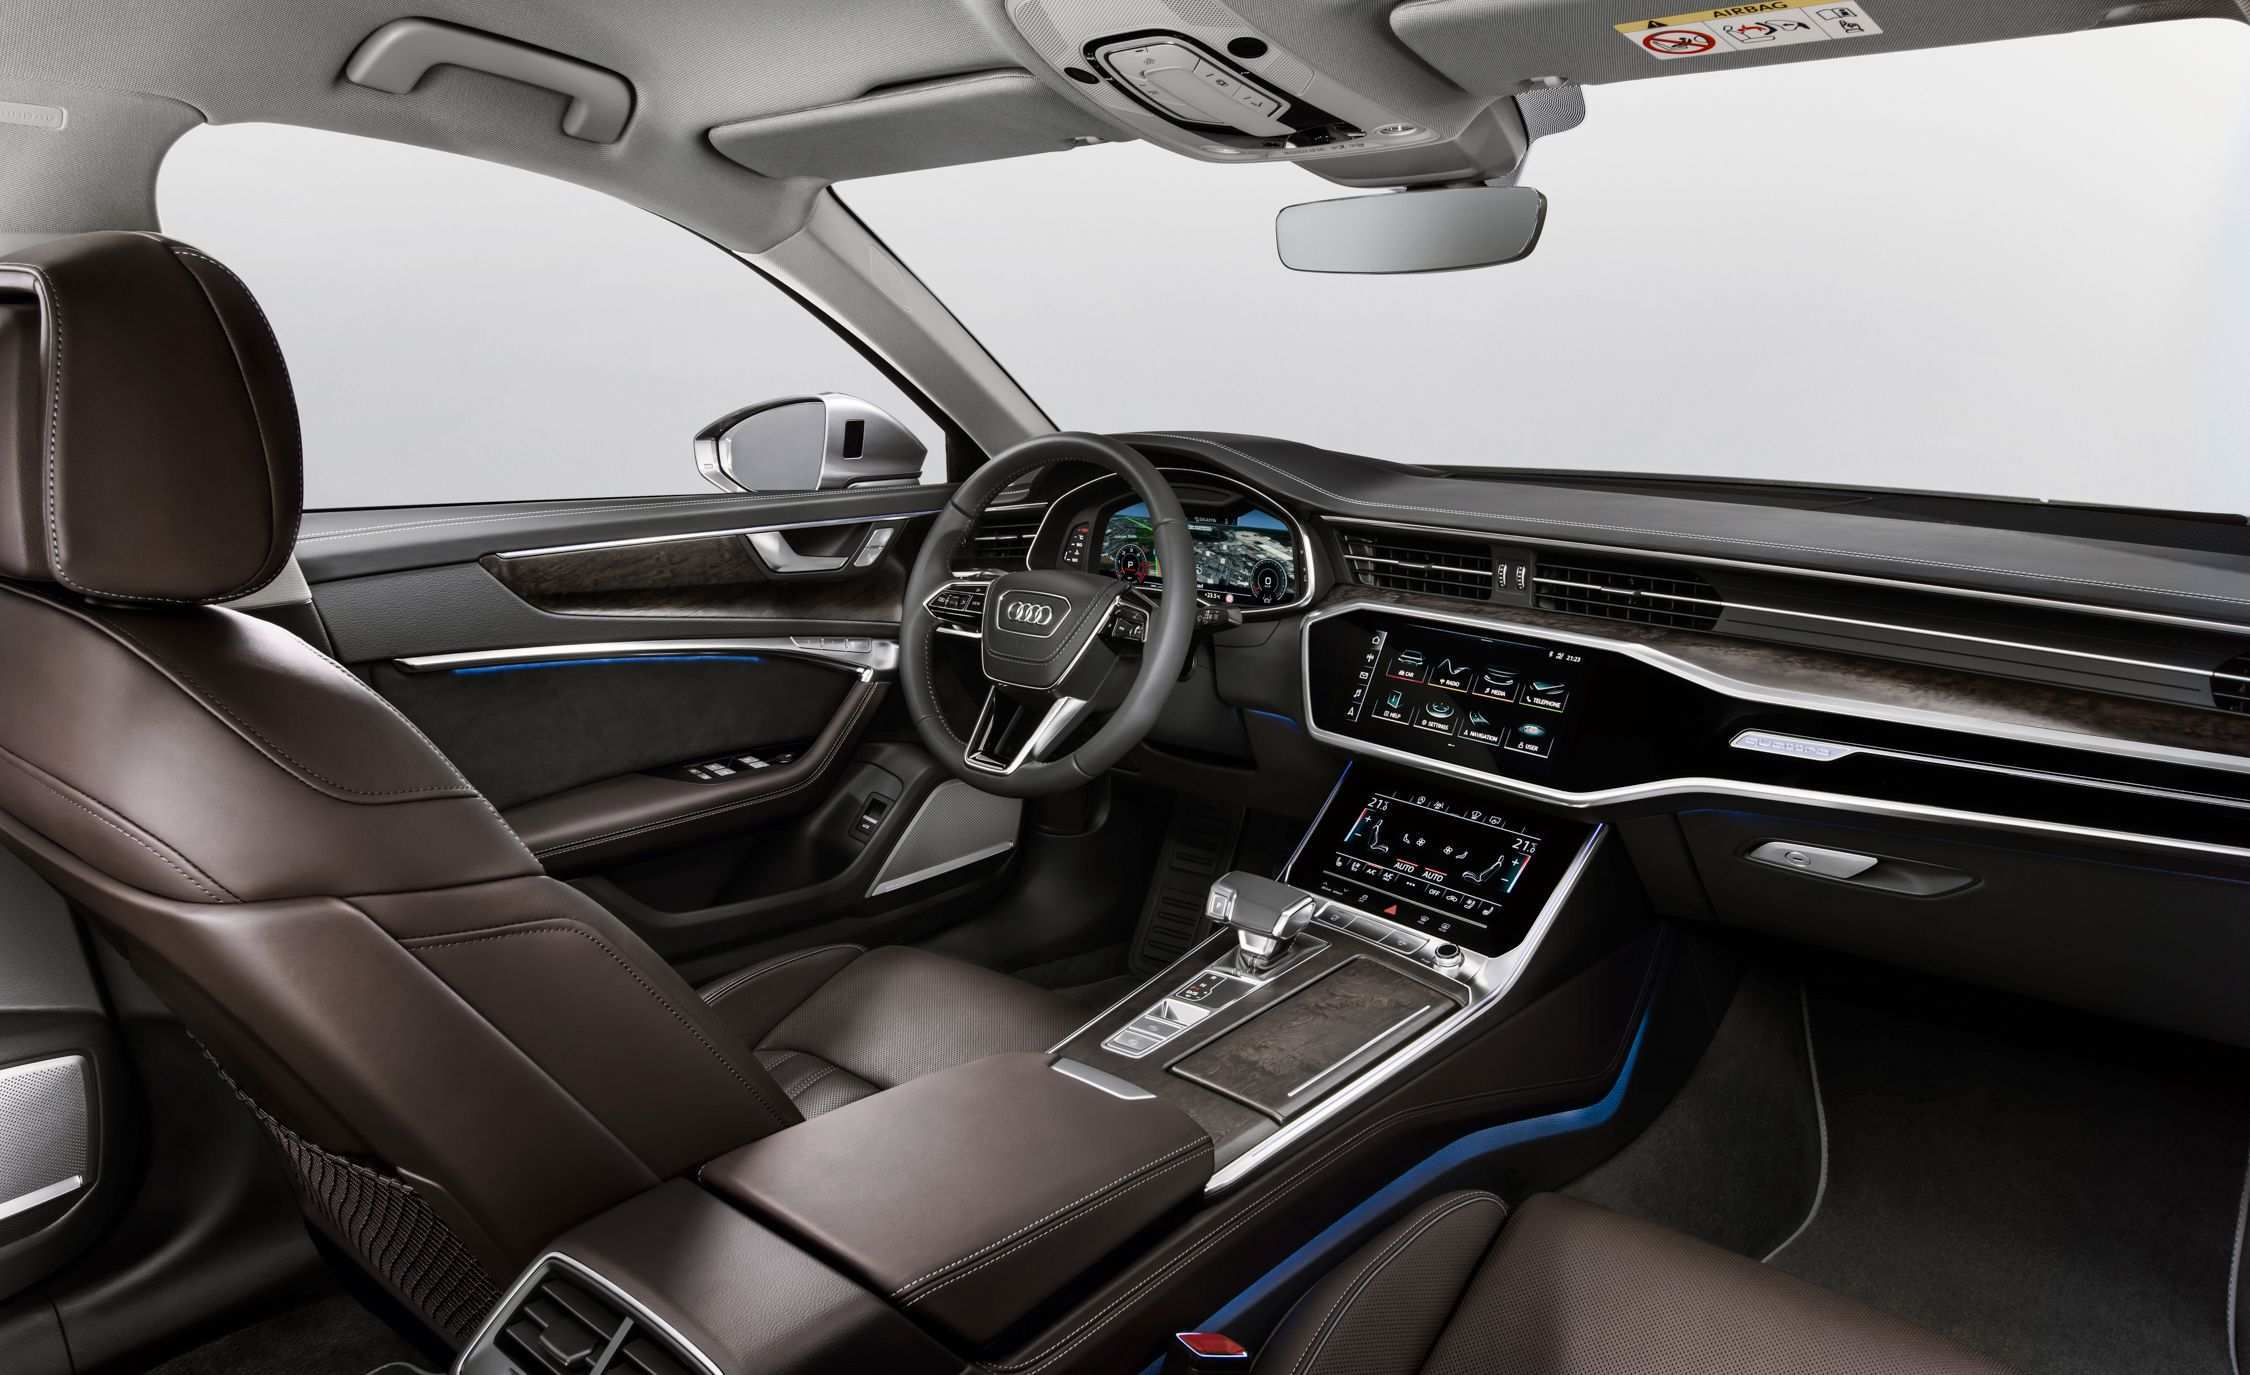 79 All New New Audi A6 2019 Interior Spy Shoot Performance and New Engine for New Audi A6 2019 Interior Spy Shoot